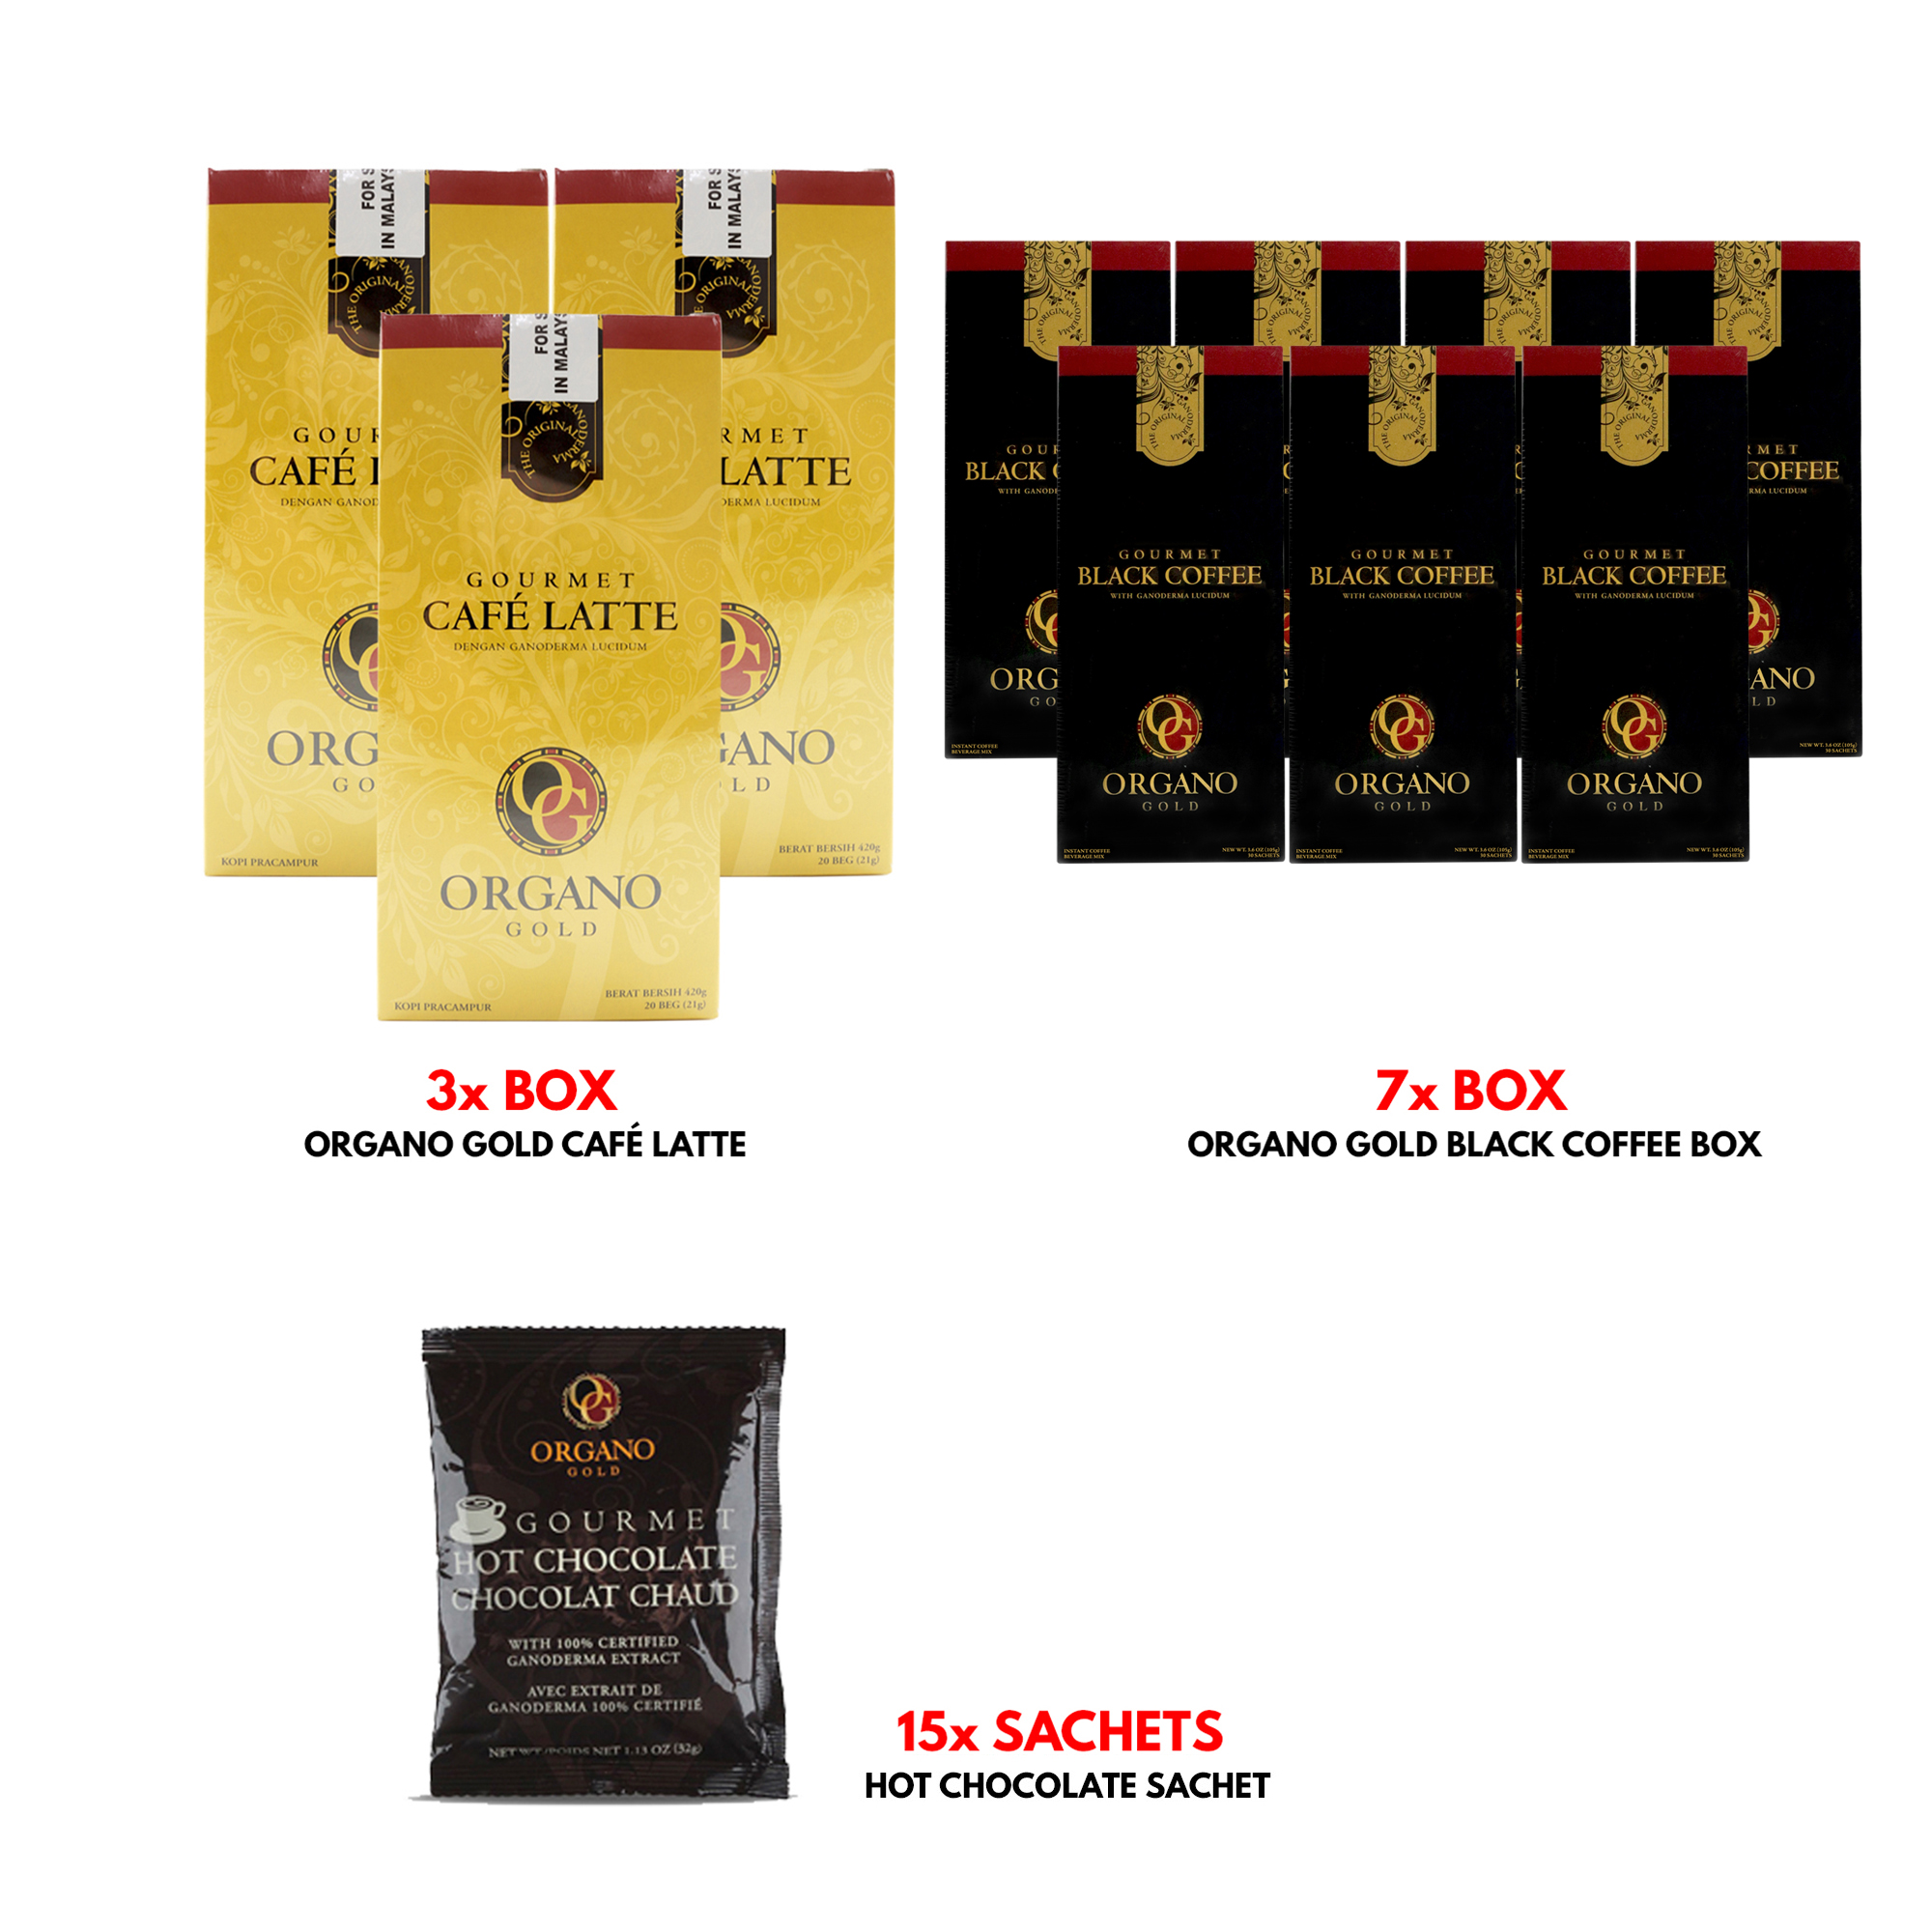 Organo Gold Cafe Latte Gourmet Coffee 3 Boxes + Organo